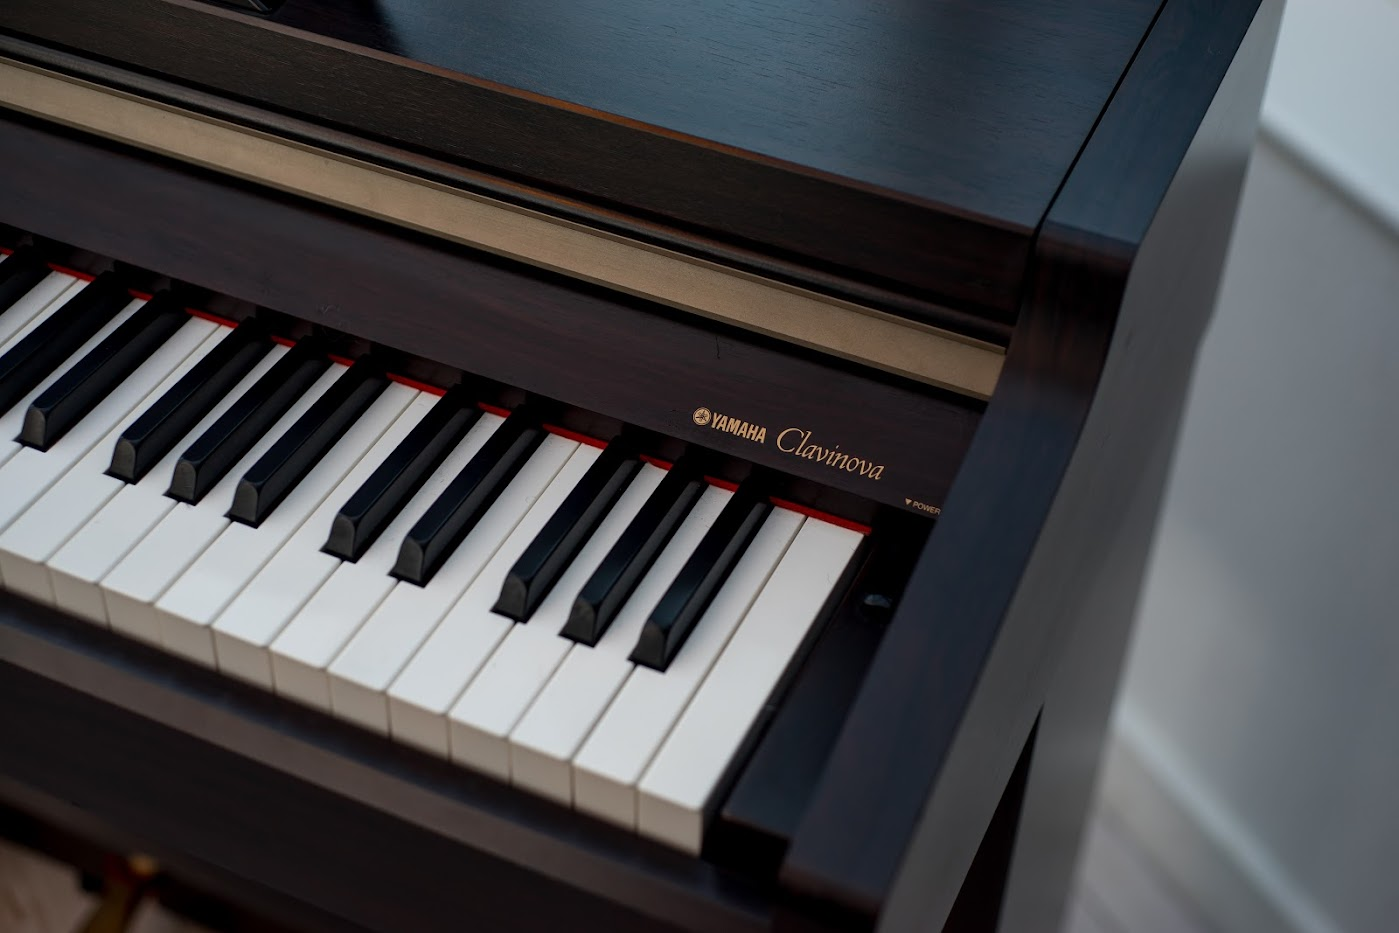 Yamaha clavinova full size digital piano 88 keys notes weighted keyboard deliver ebay for Yamaha fully weighted keyboard